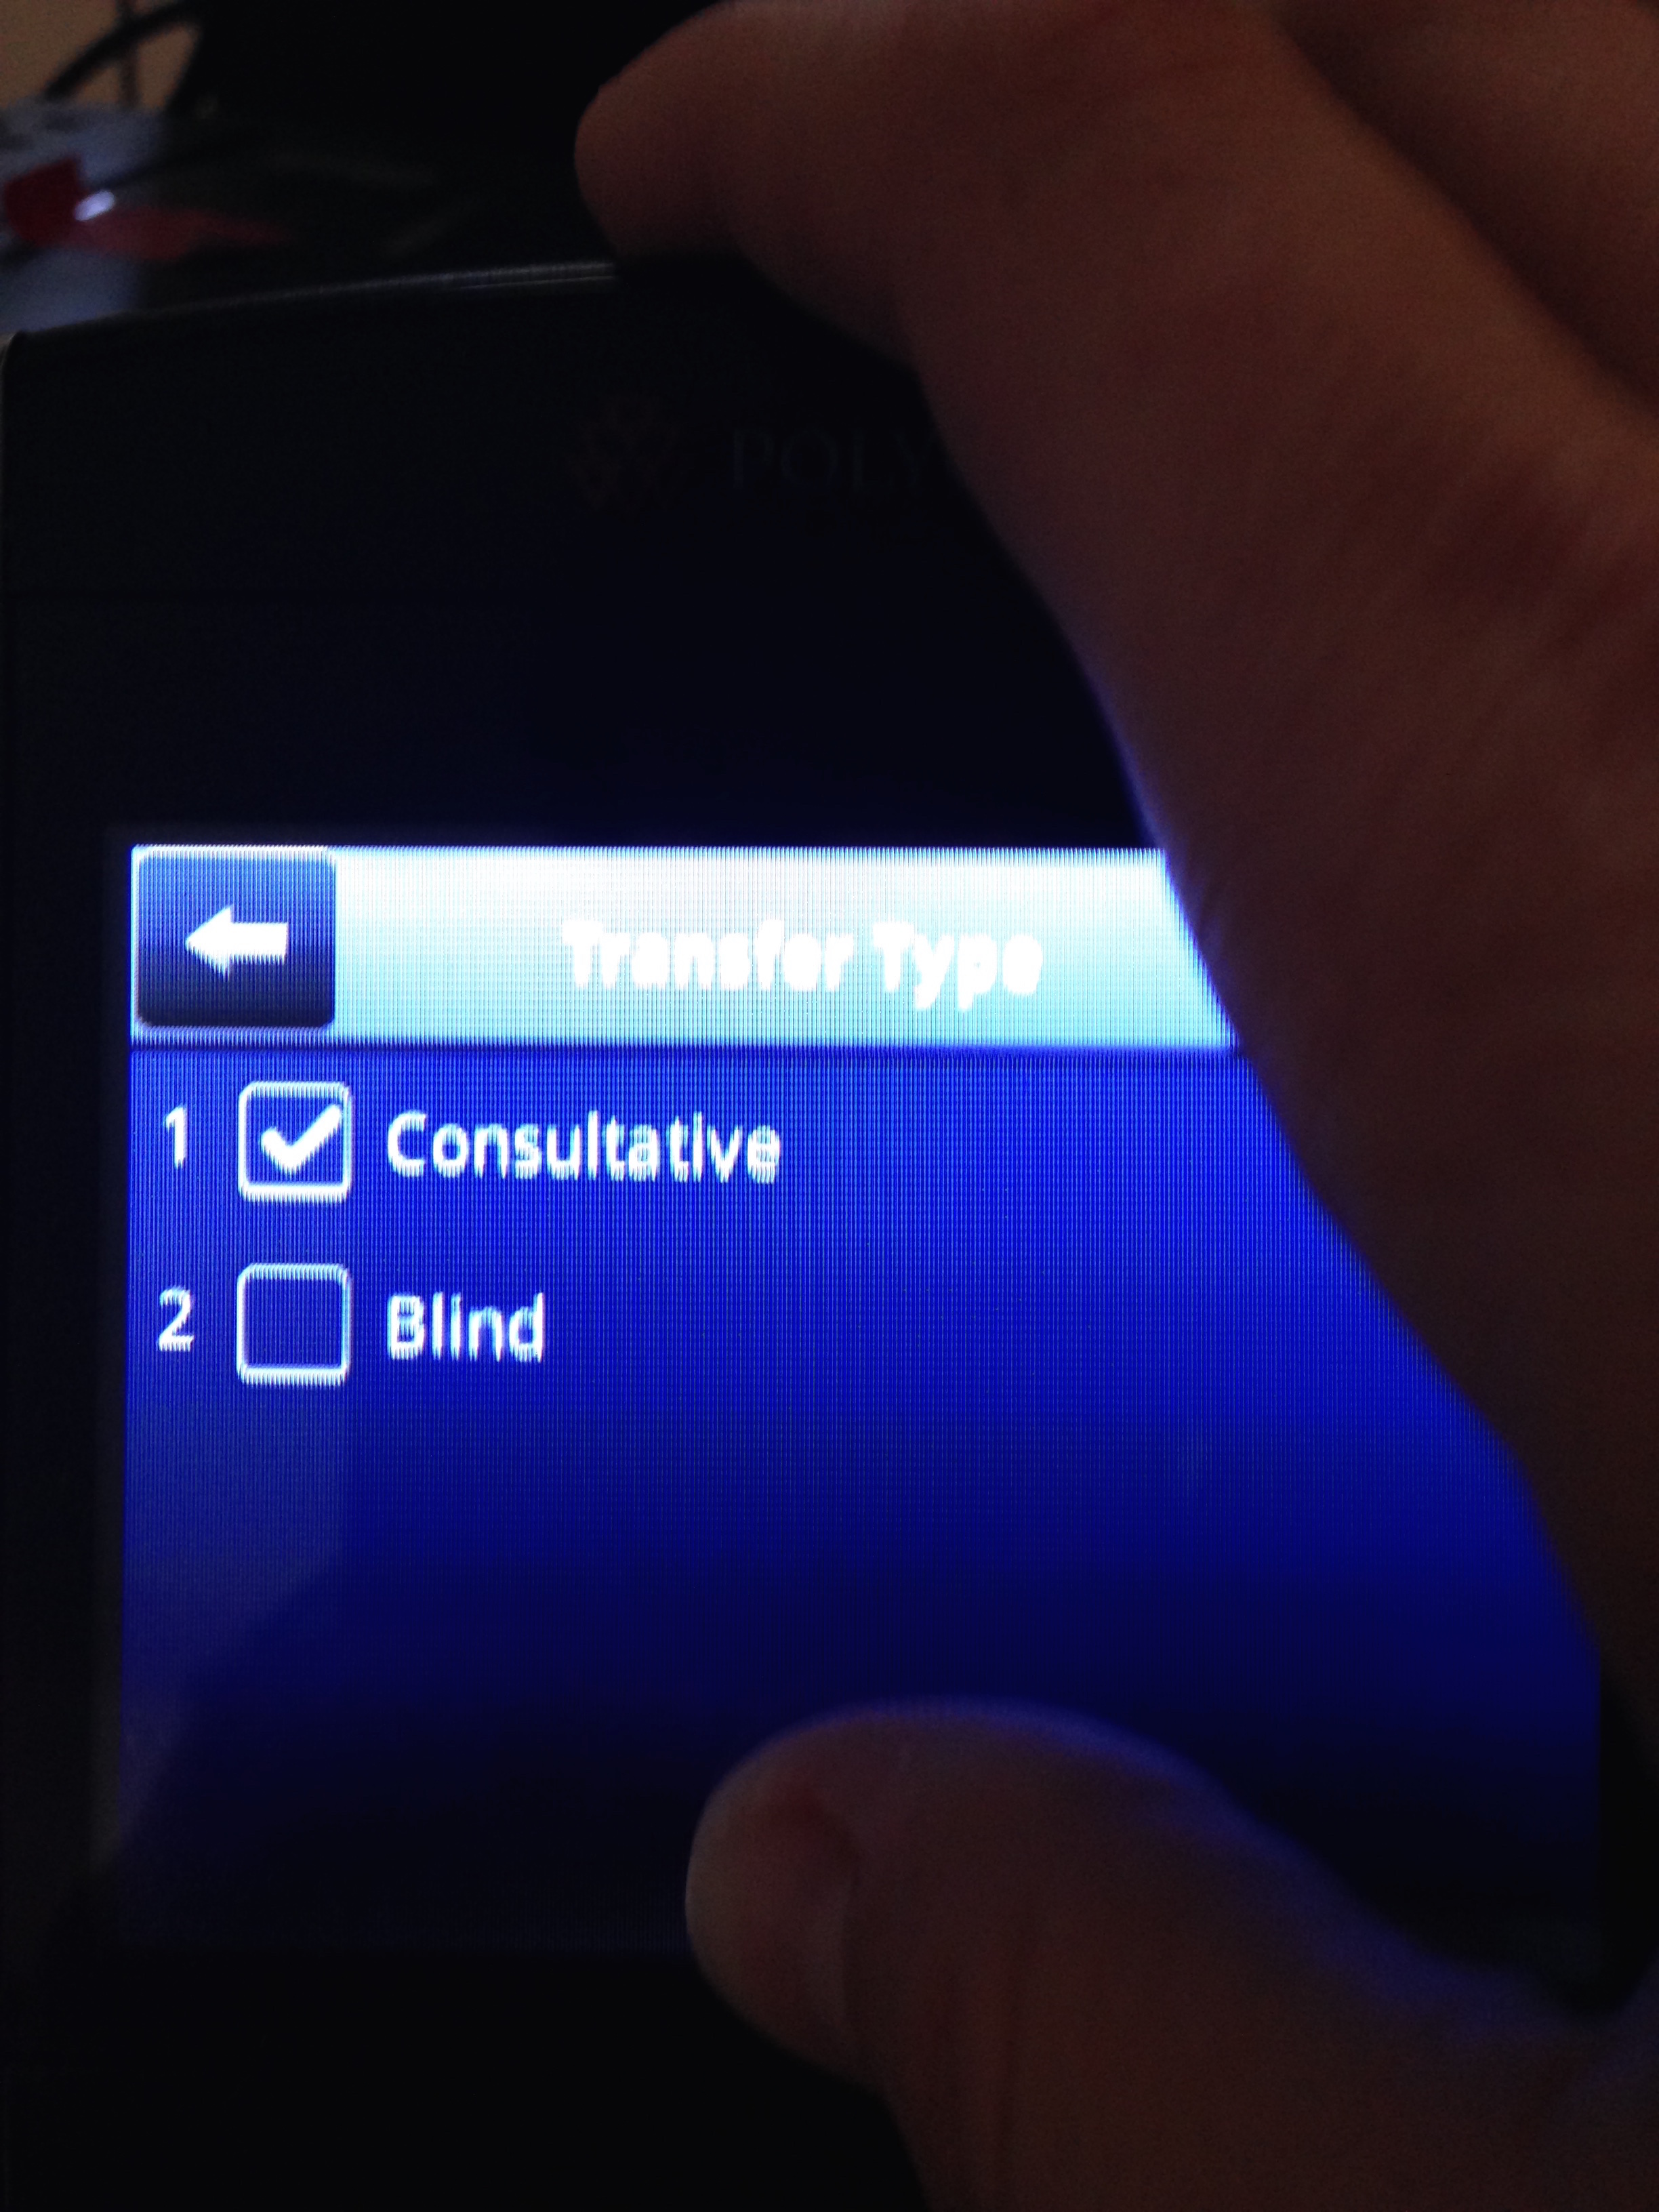 Select blind option